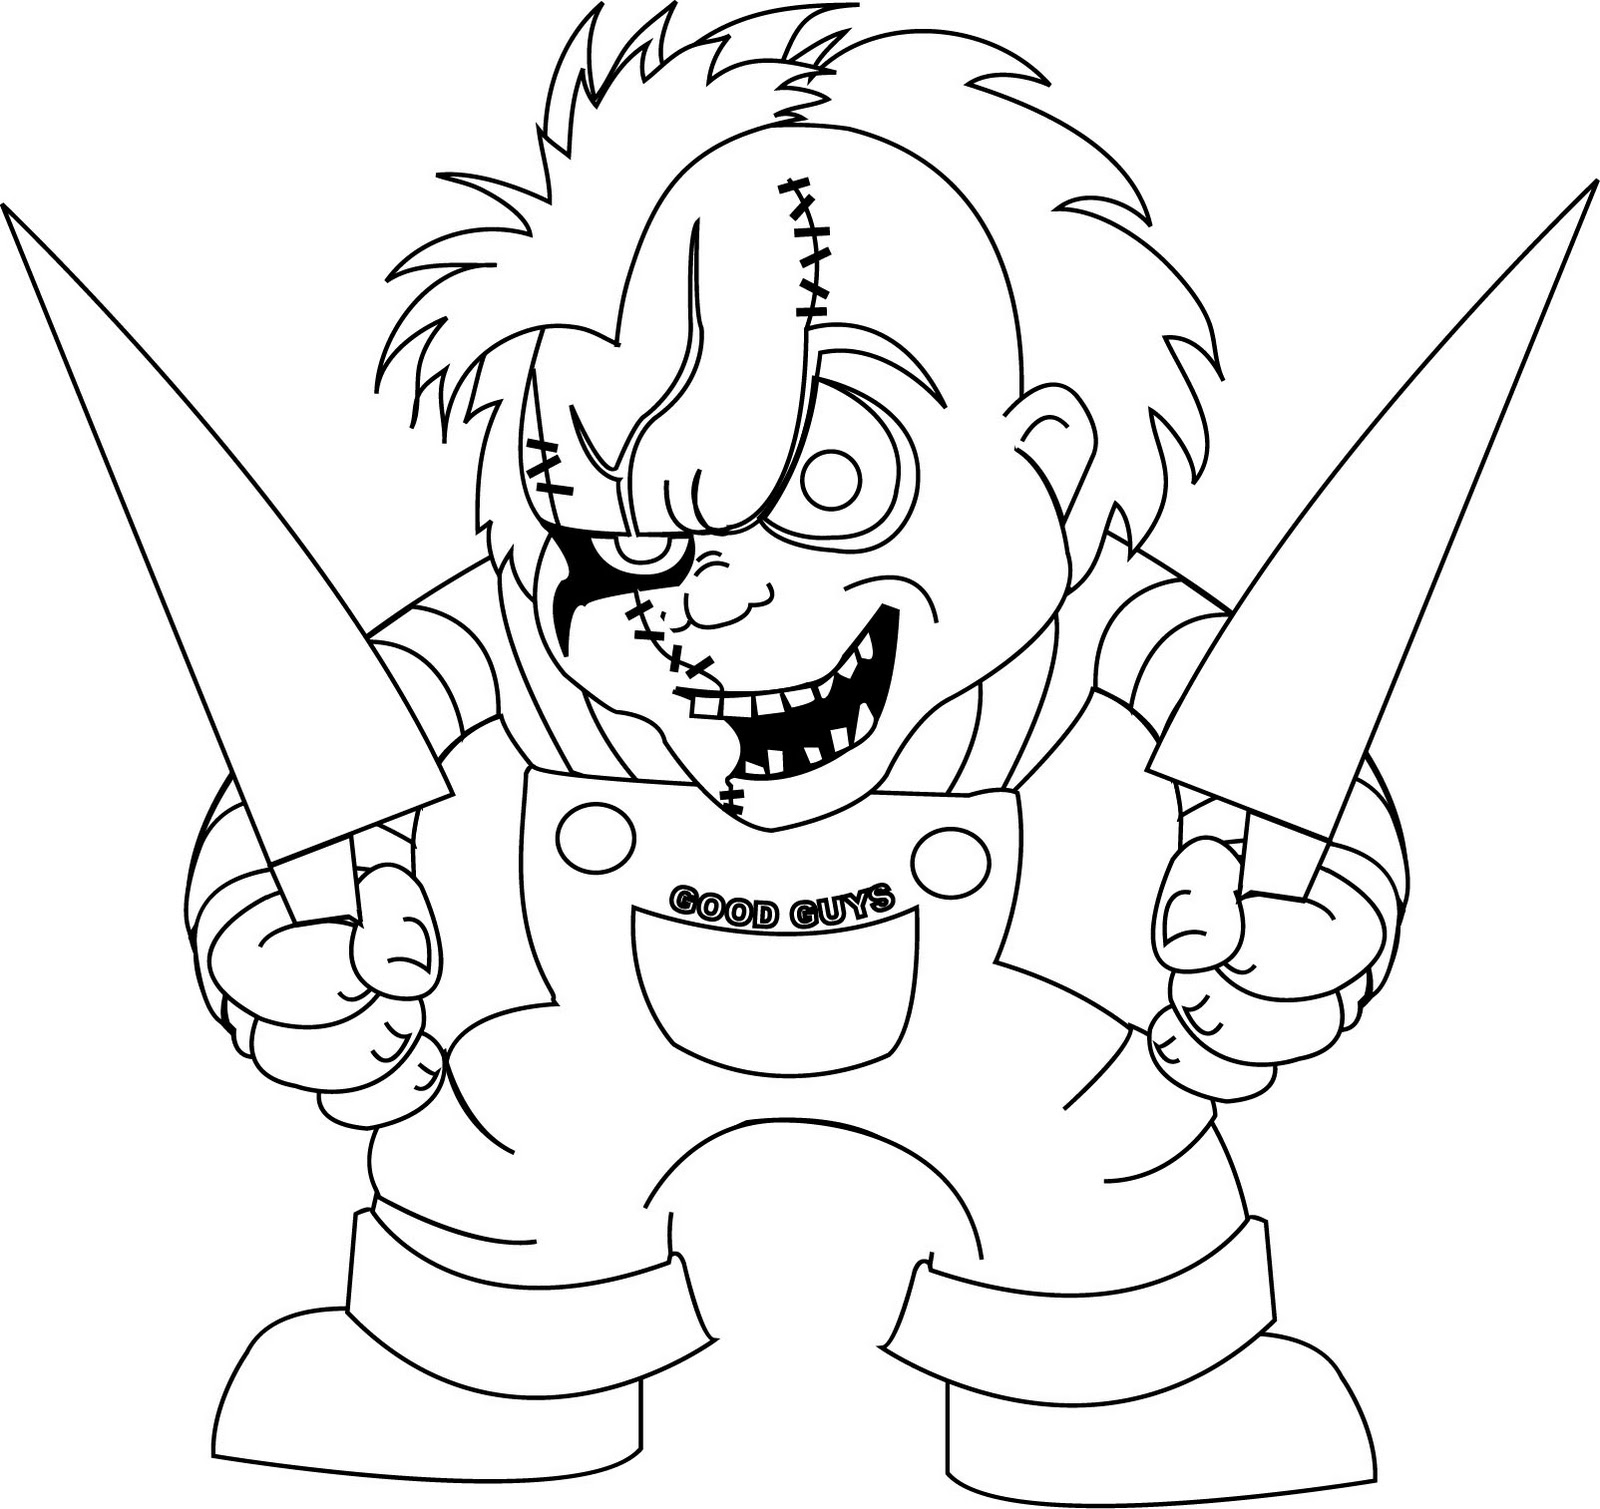 chucky doll coloring pages kidsfreecoloringnet free download kids american girl